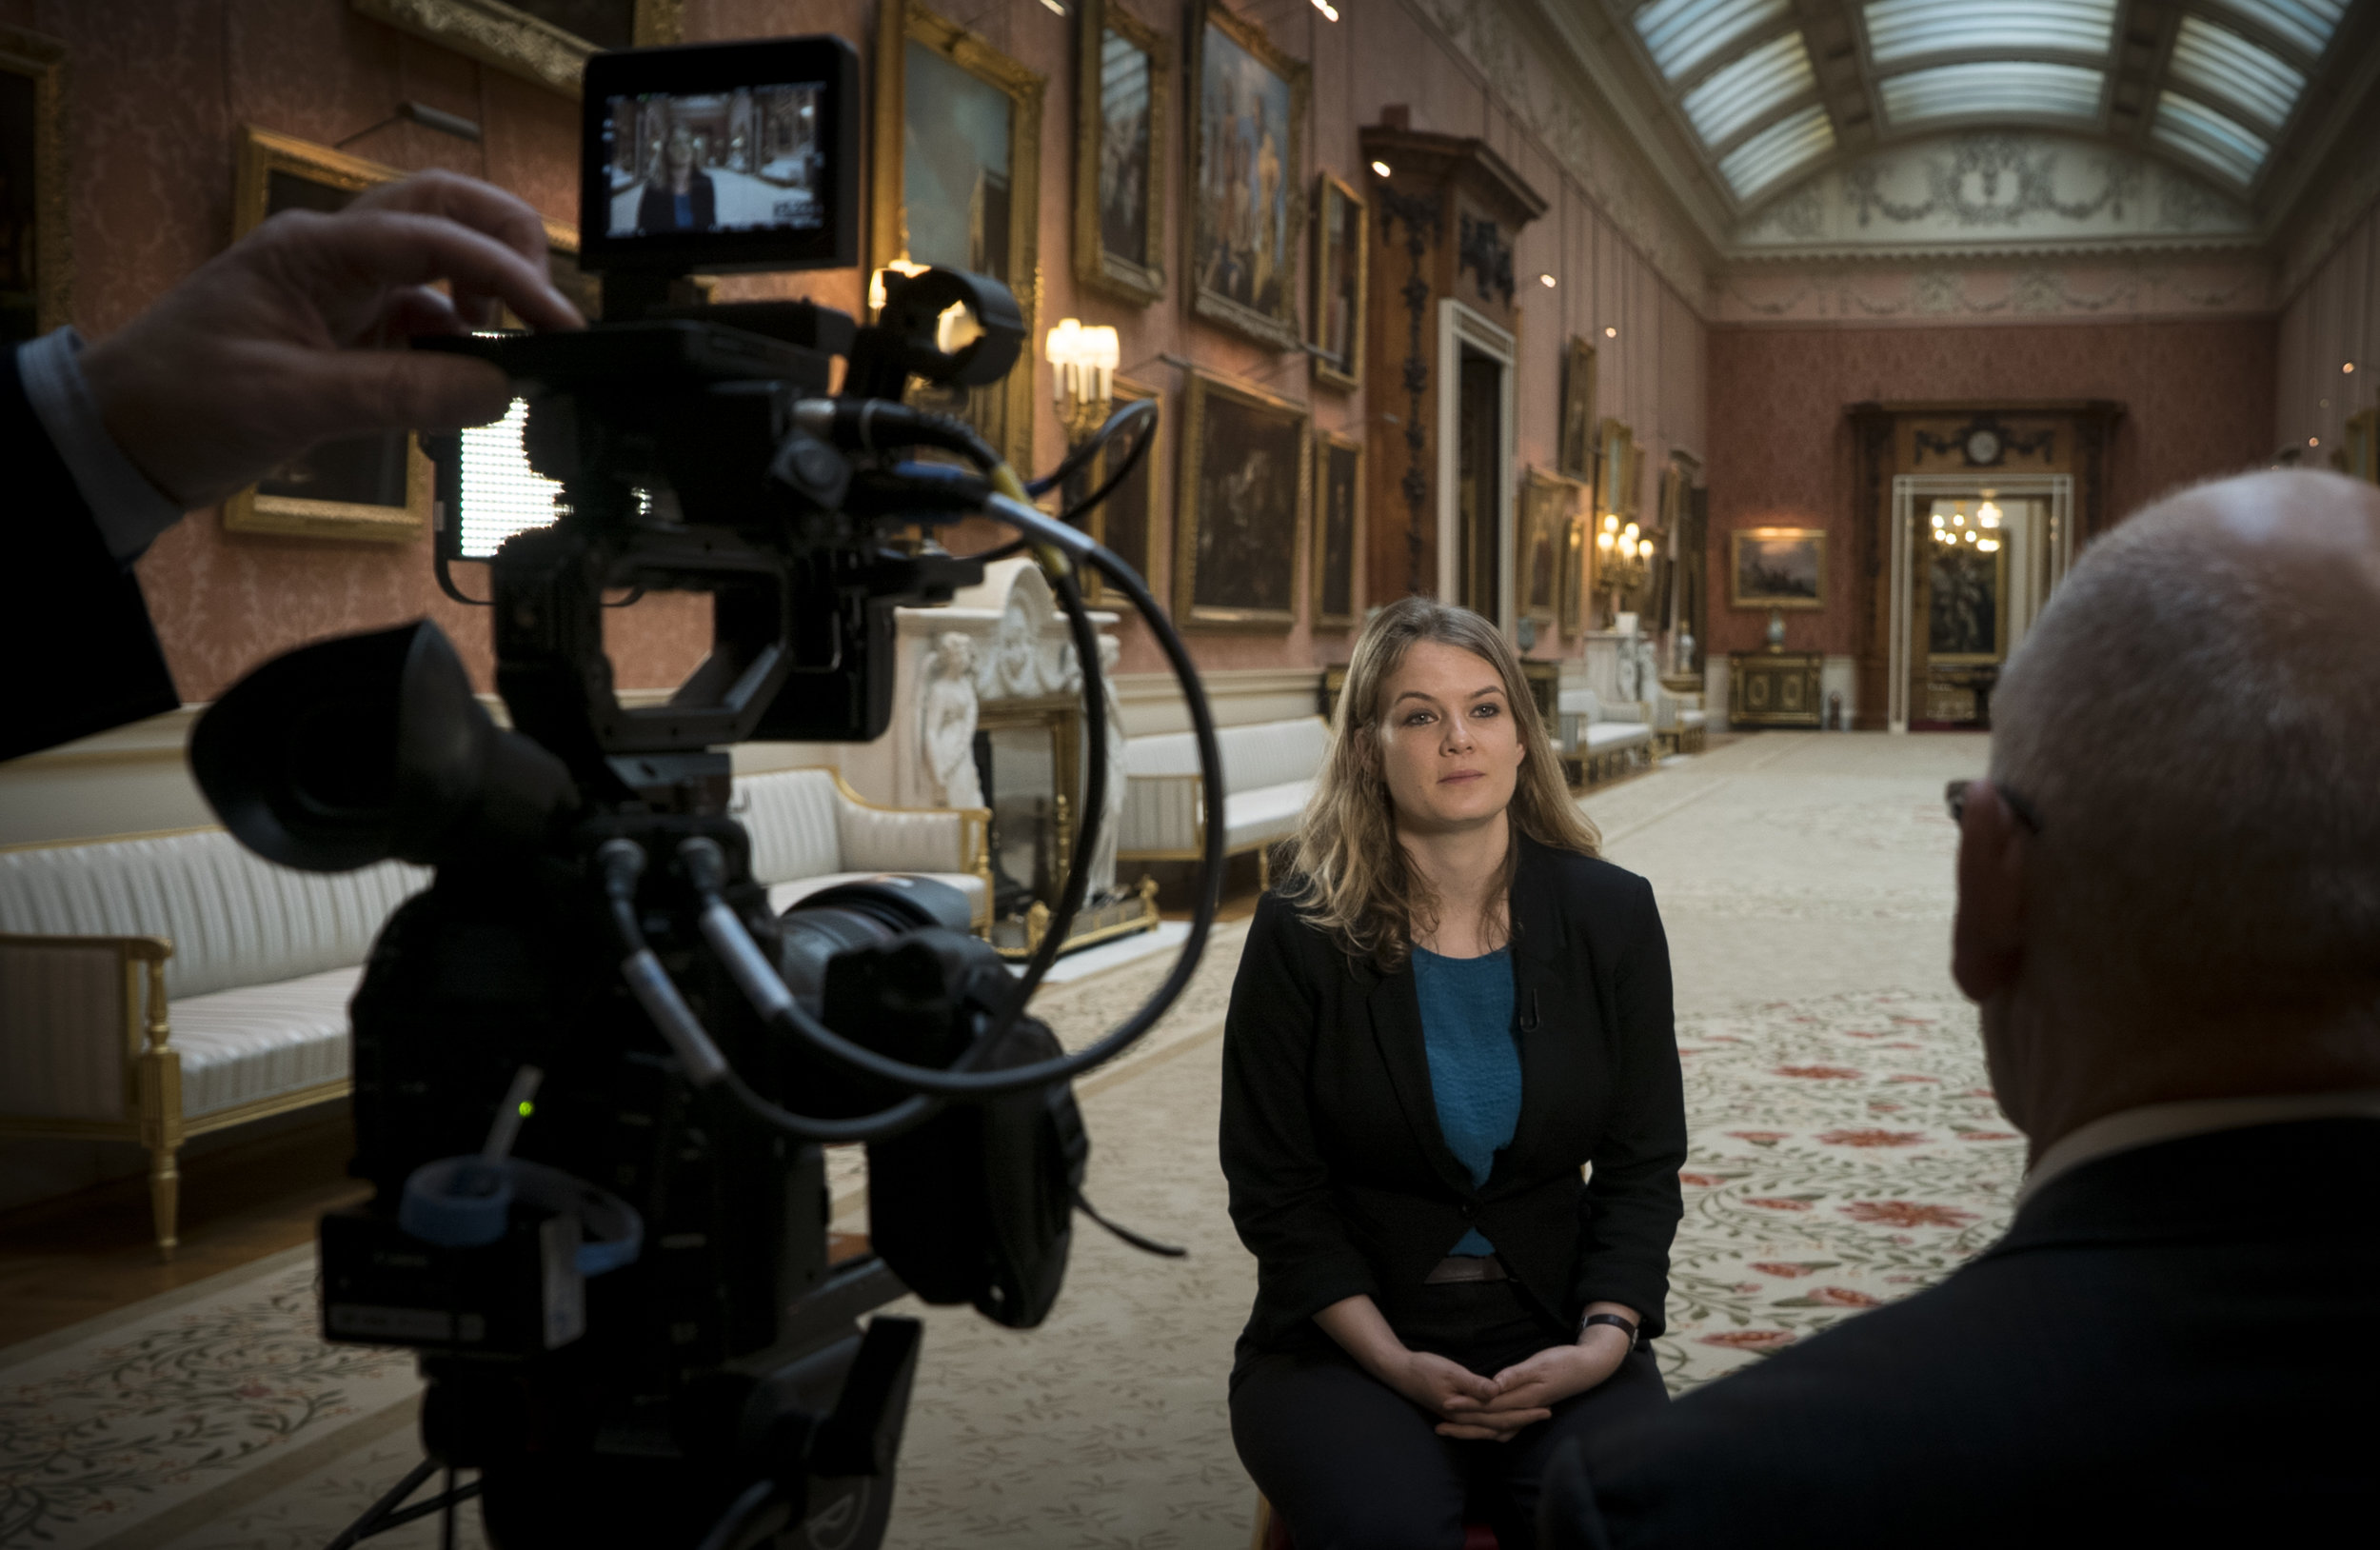 Filming with Rosie Razzall at The Queen's Gallery, Buckingham Palace © EXHIBITION ON SCREEN (David Bickerstaff)